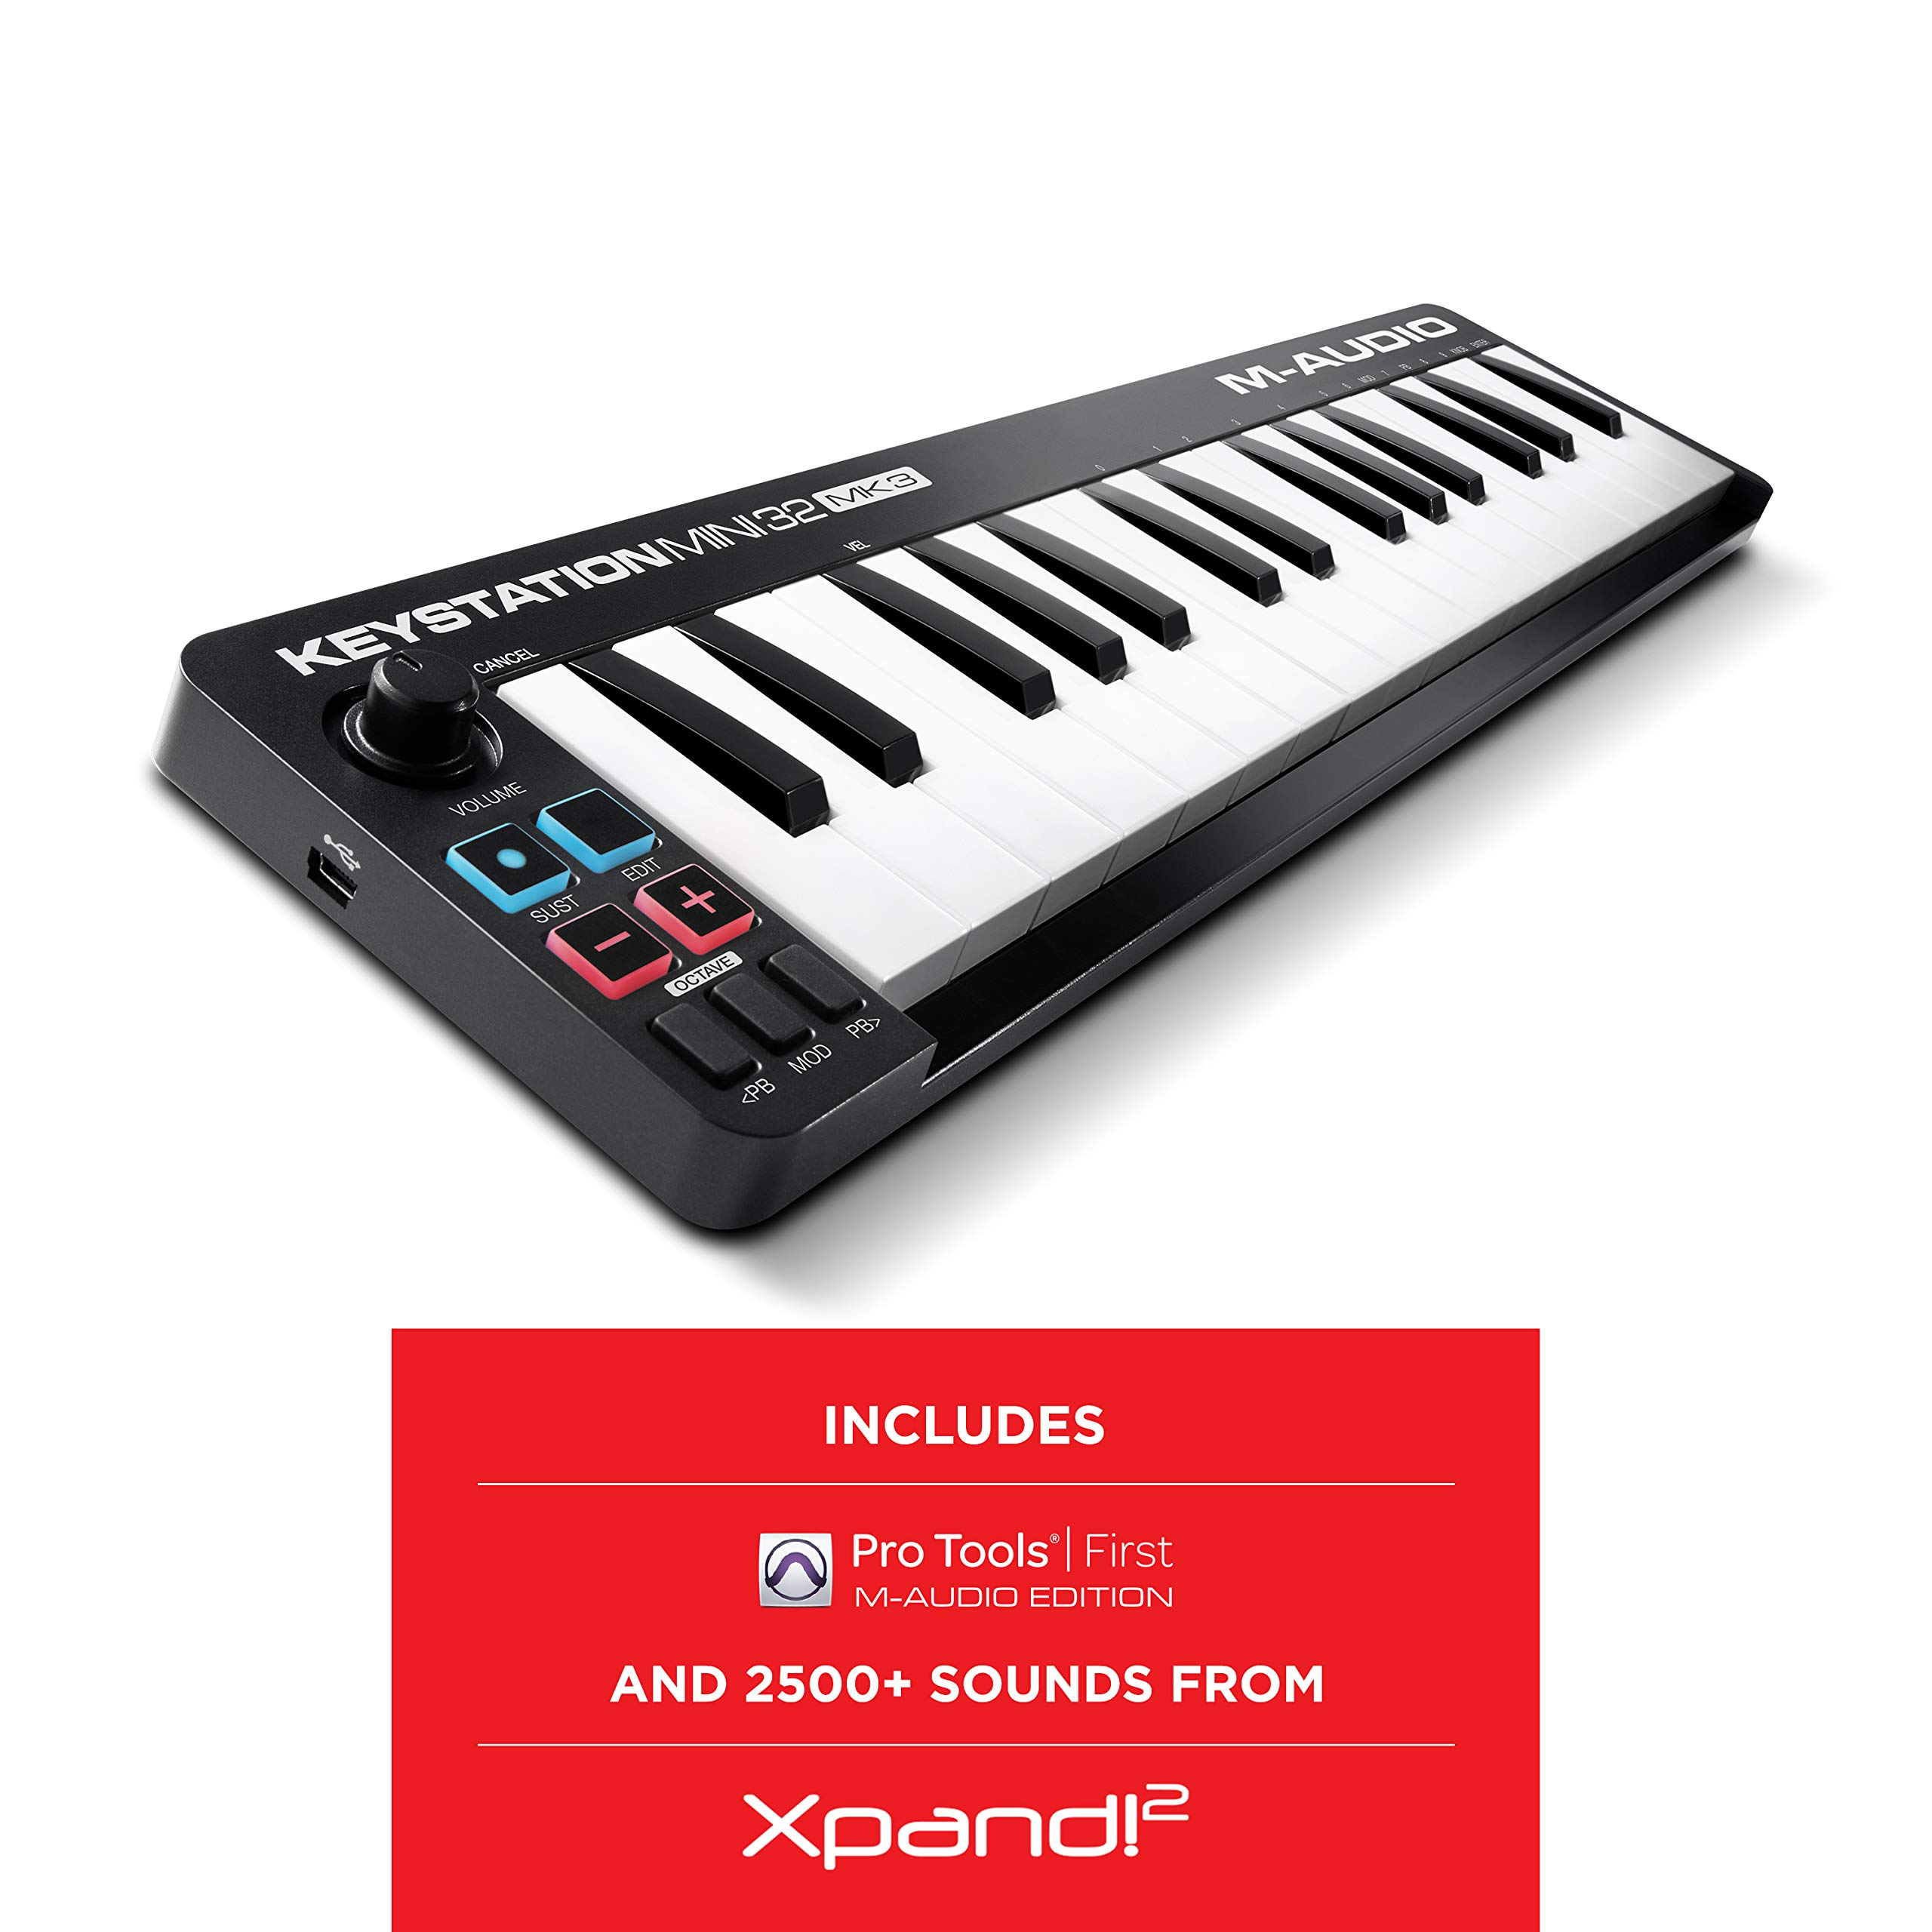 M Audio Keystation Mini 32 MK3 | Ultra Portable Mini USB MIDI Keyboard Controller With ProTools First | M Audio Edition and Xpand 2 by AIR Music Tech by M-Audio